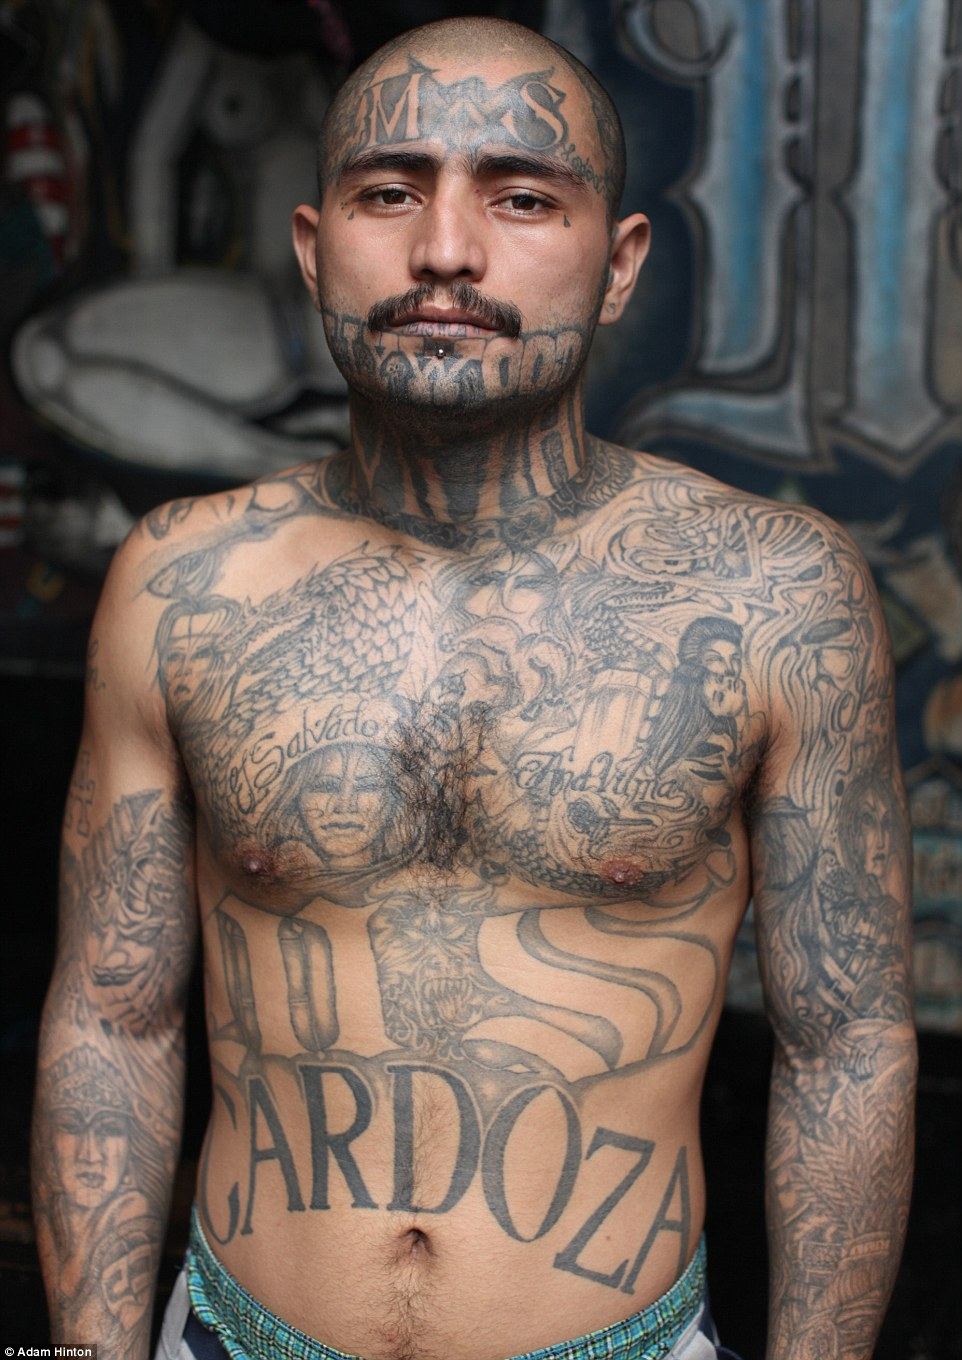 Run this town: In Penas Ciudad Barrios, the Mara Salvatrucha control their own miniature society of some 2,500 incarcerated members, complete with a bakery, workshops, a hospital and rehab